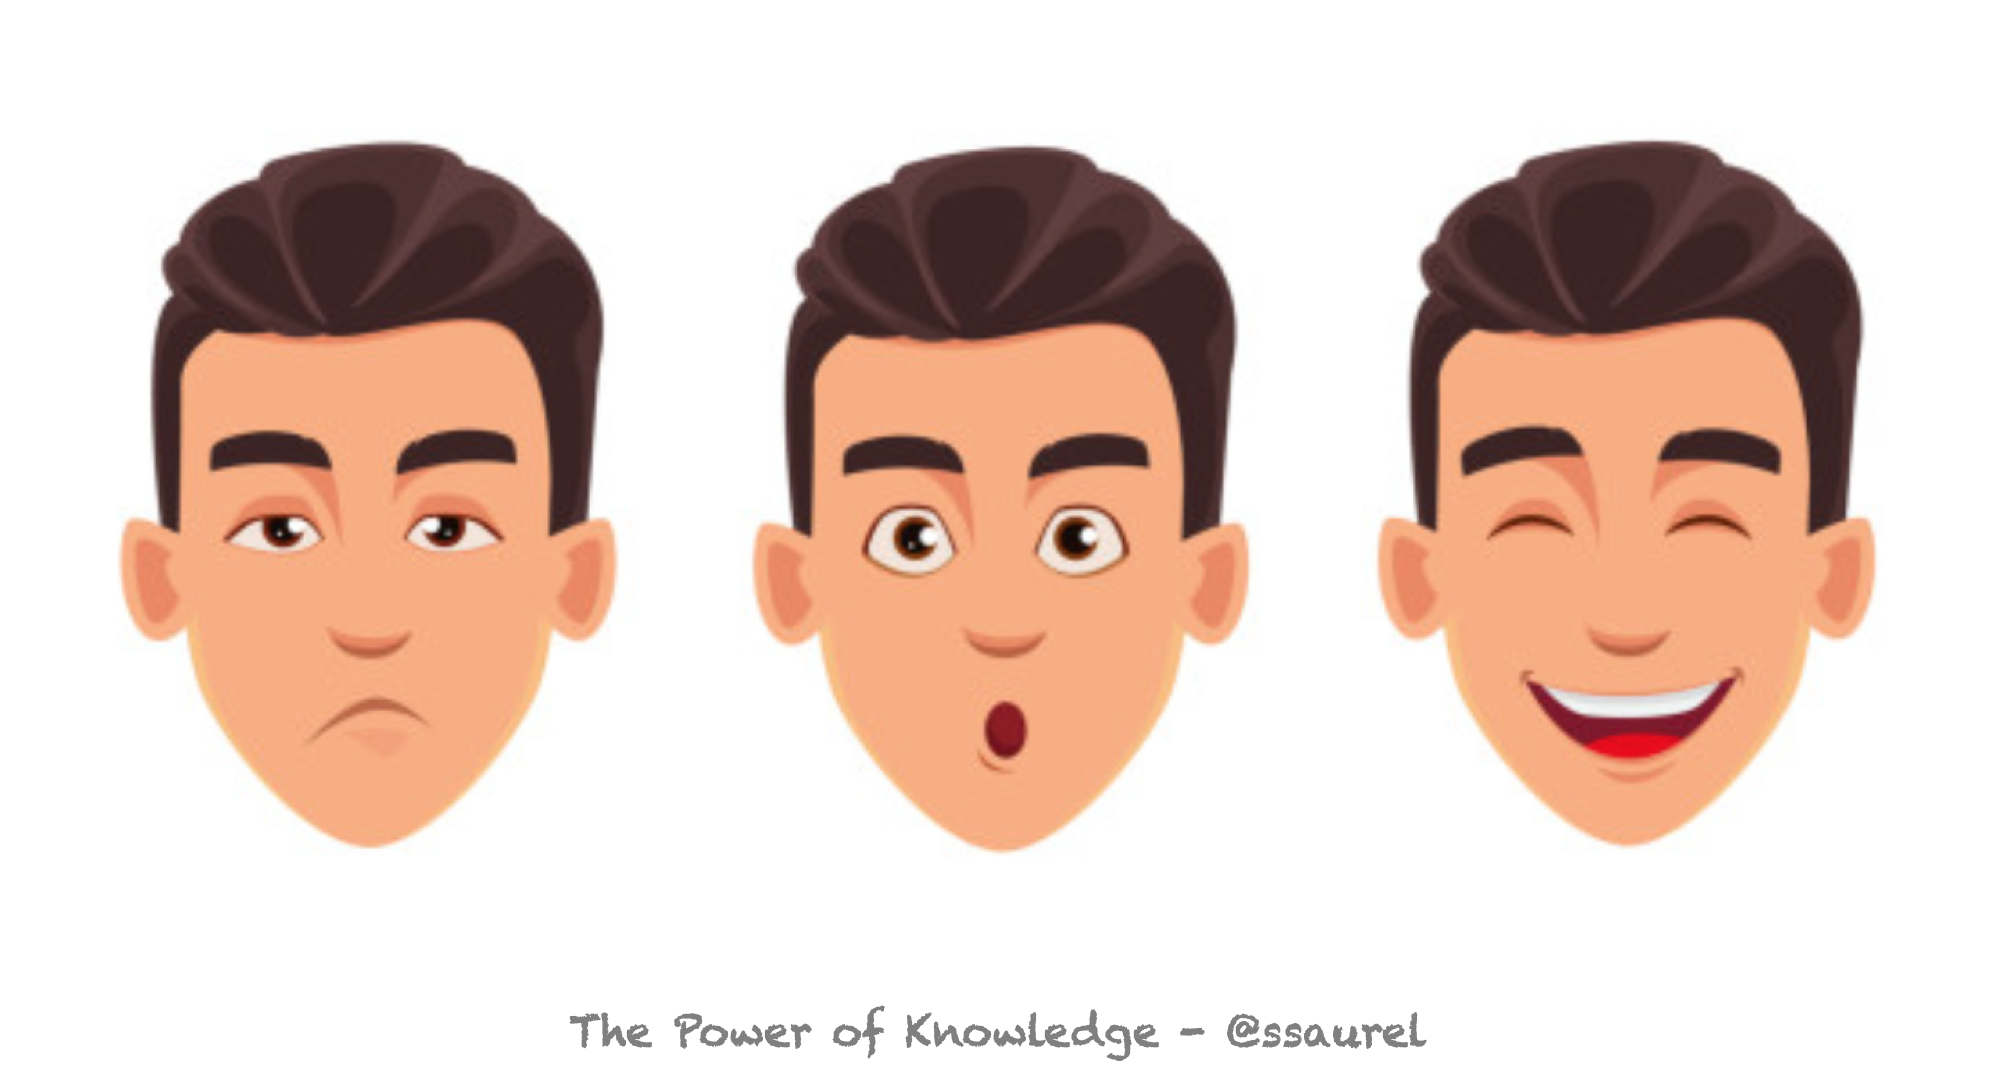 [Image] The Japanese say you have three faces. Make these three facets of your personality converge as much as possible to be truly happy.